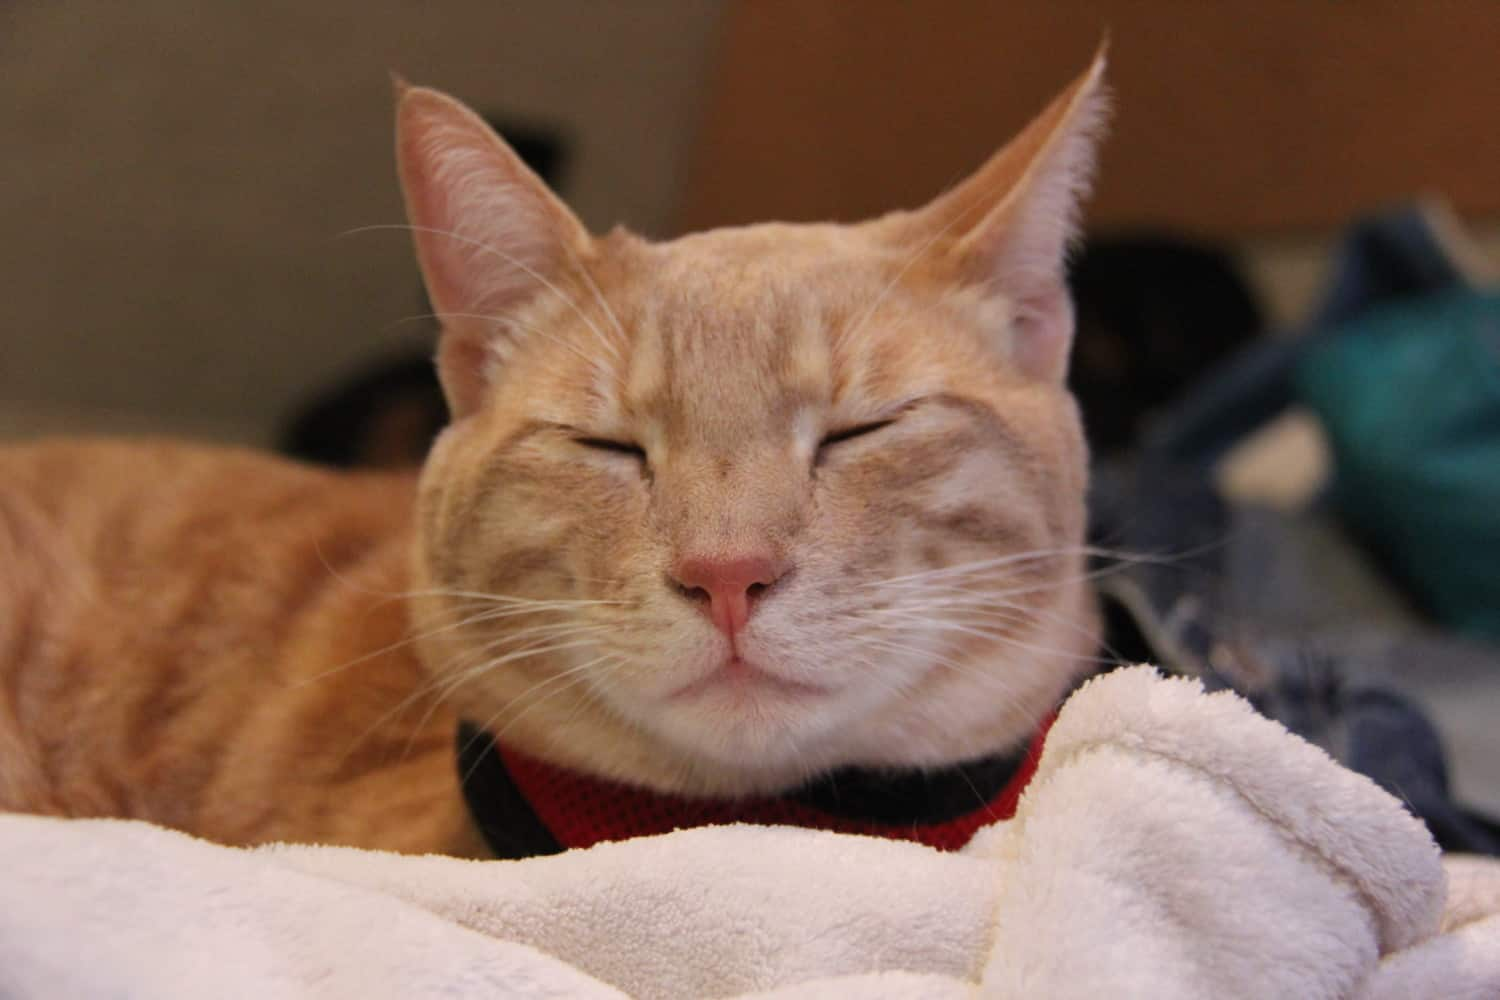 Fish the cat sleeping on a comfortable pet bed